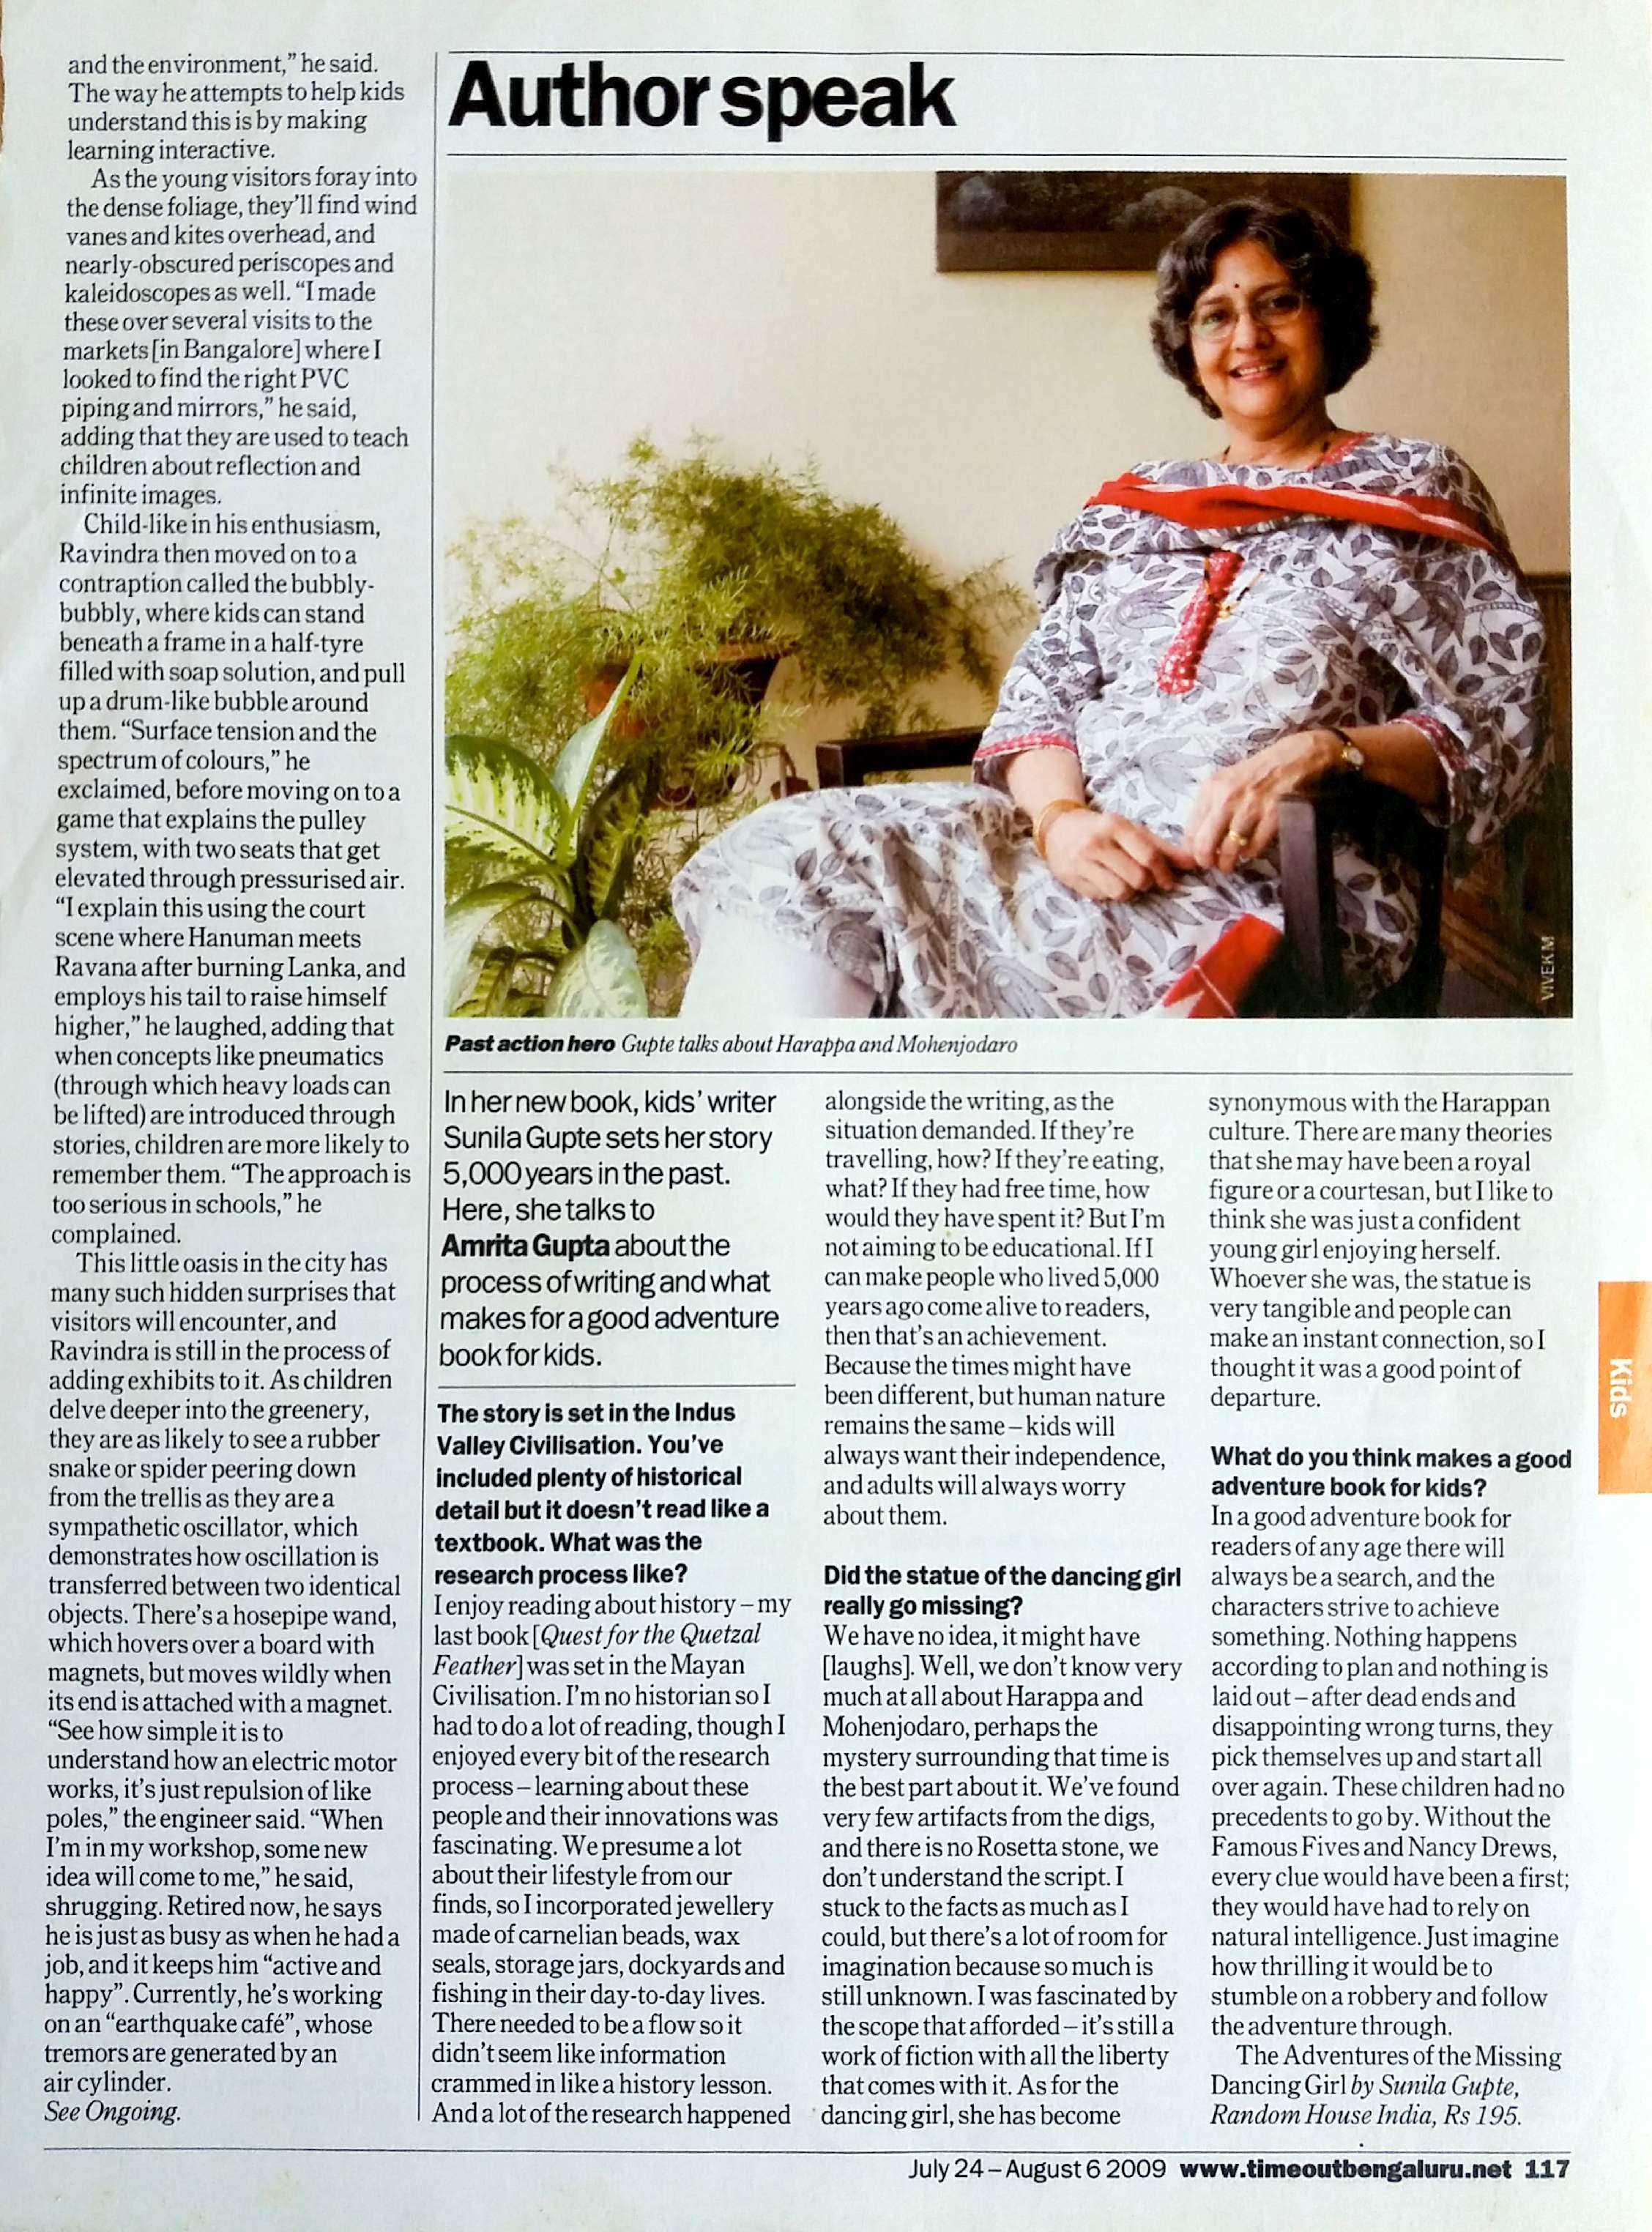 TIME OUT BENGALURU, 2009 (Page 2)